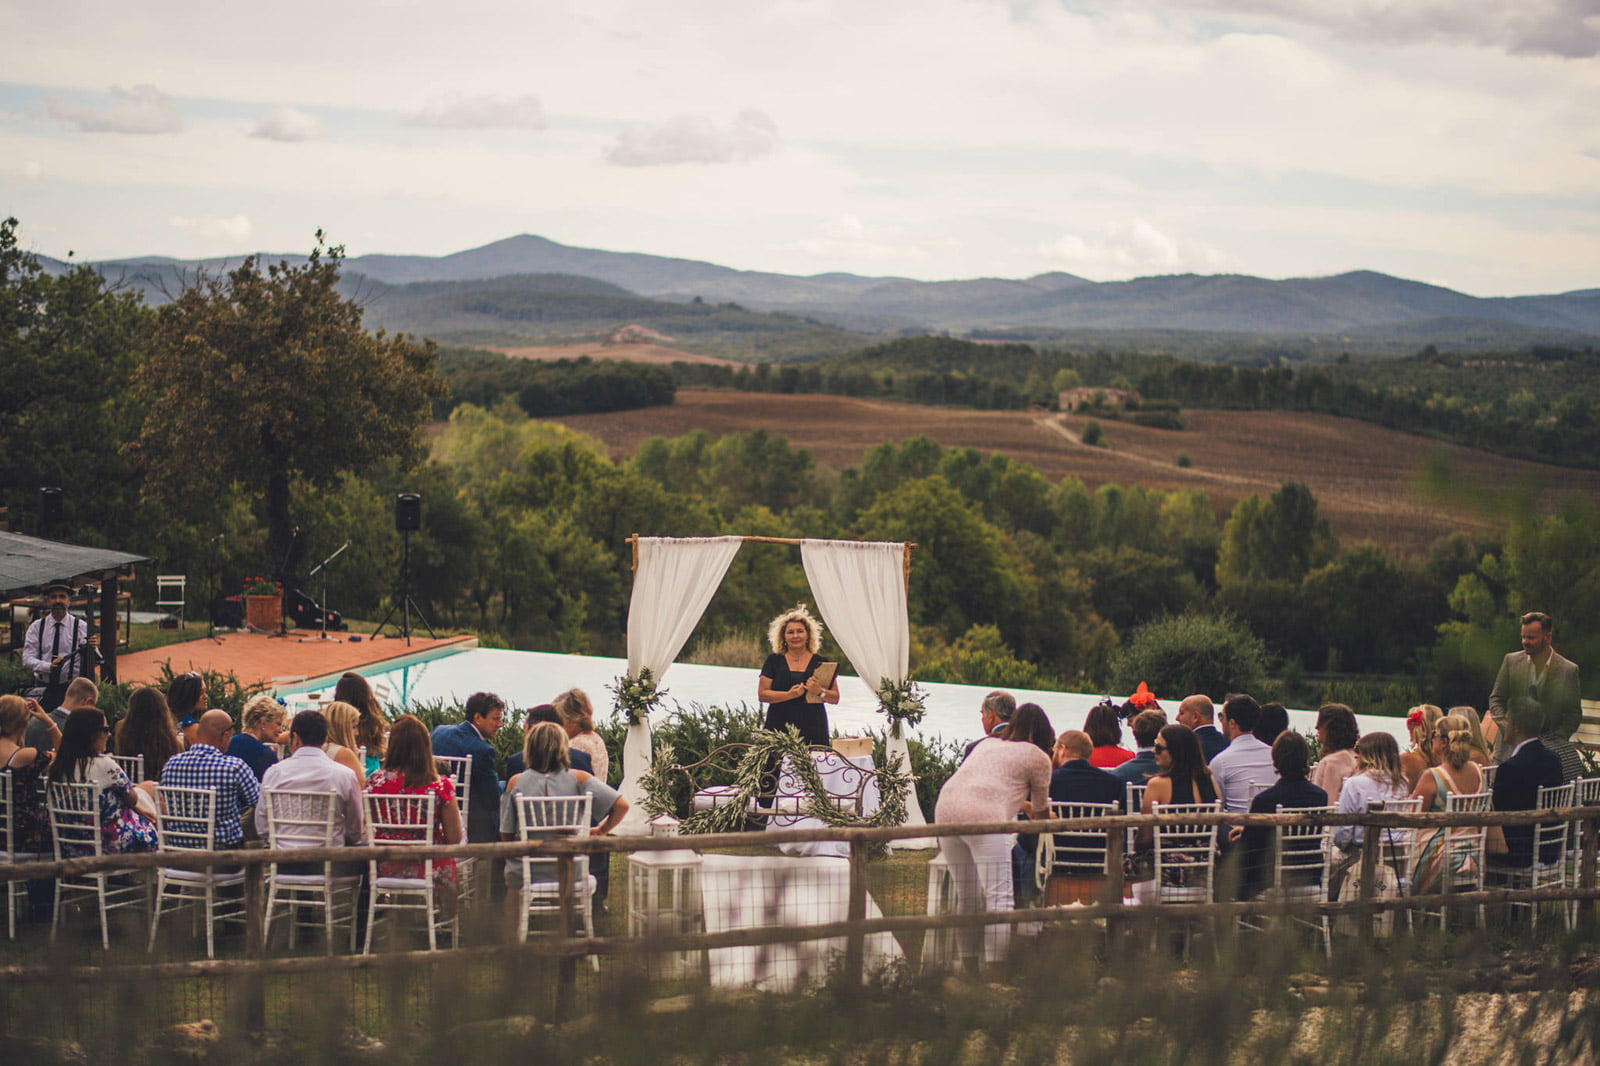 040-wedding-tuscany-san-galgano-federico-pannacci-photographer